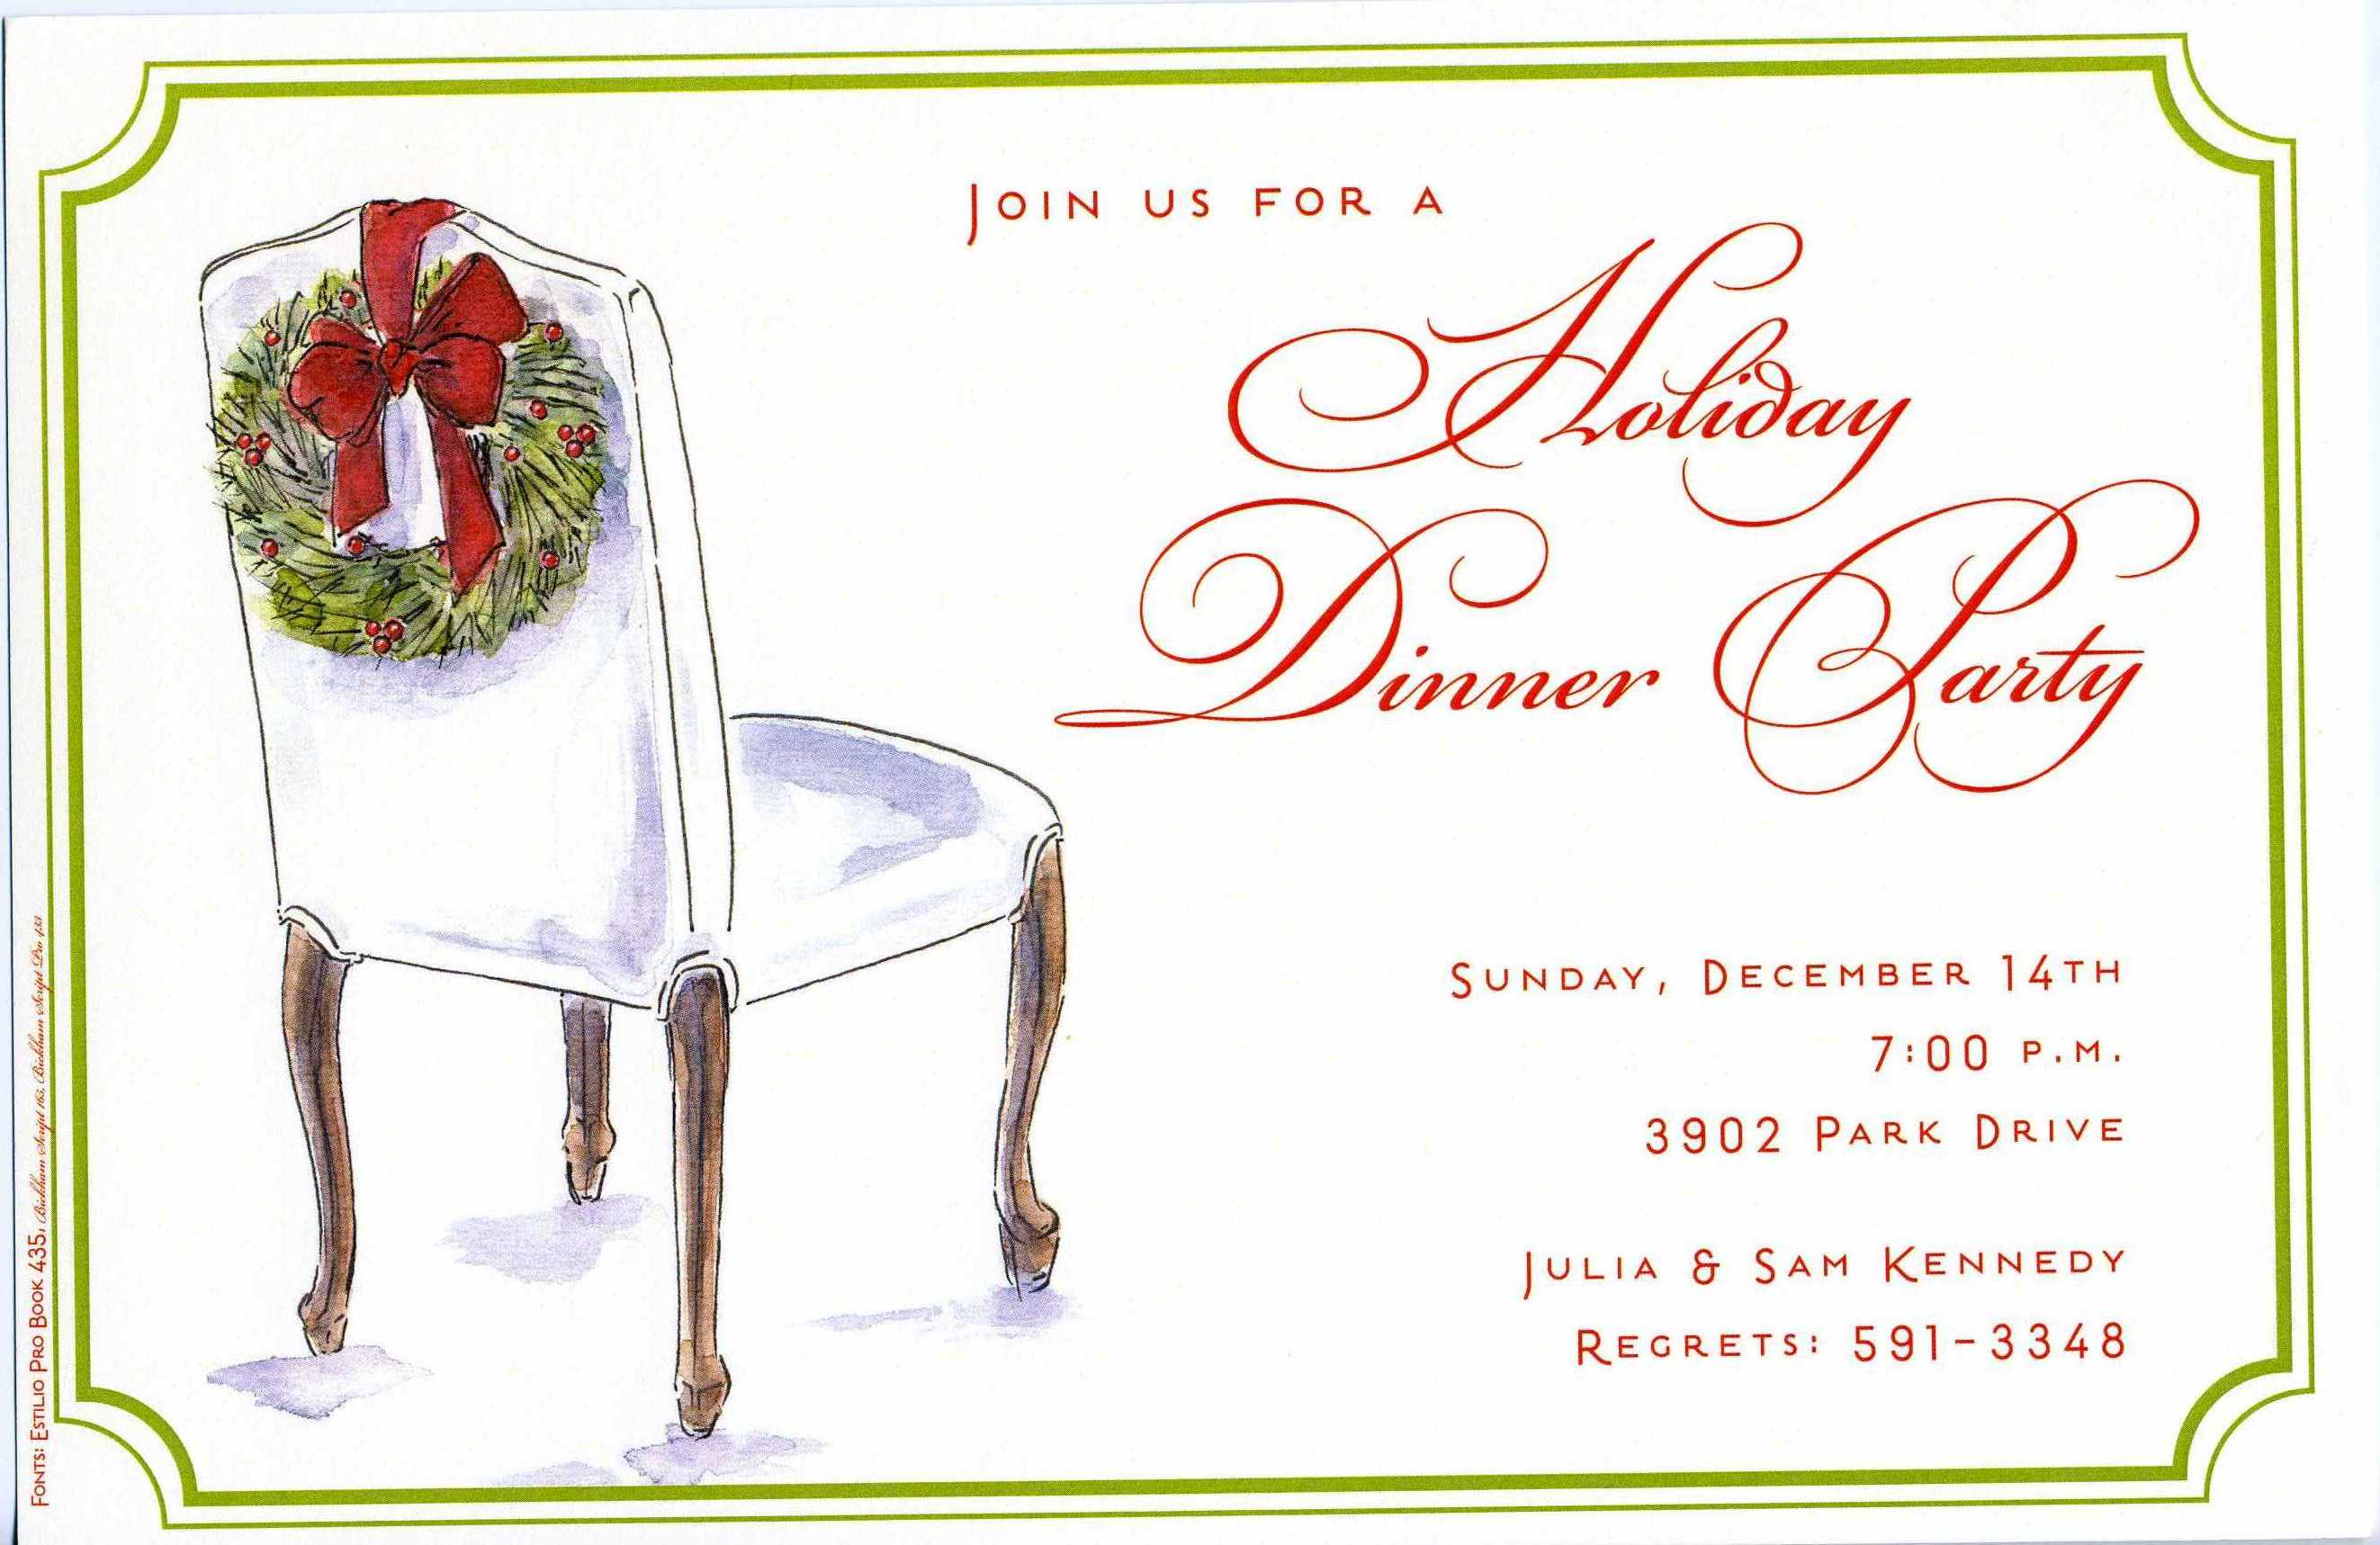 Wreath Chair - This simply elegant holiday invitation features a white dinner party chair and a festive green wreath with red accents hanging over the back.  A decorative green frame borders the card.  Perfect for a holiday dinner party or any celebration this season!  Includes ivory envelope.